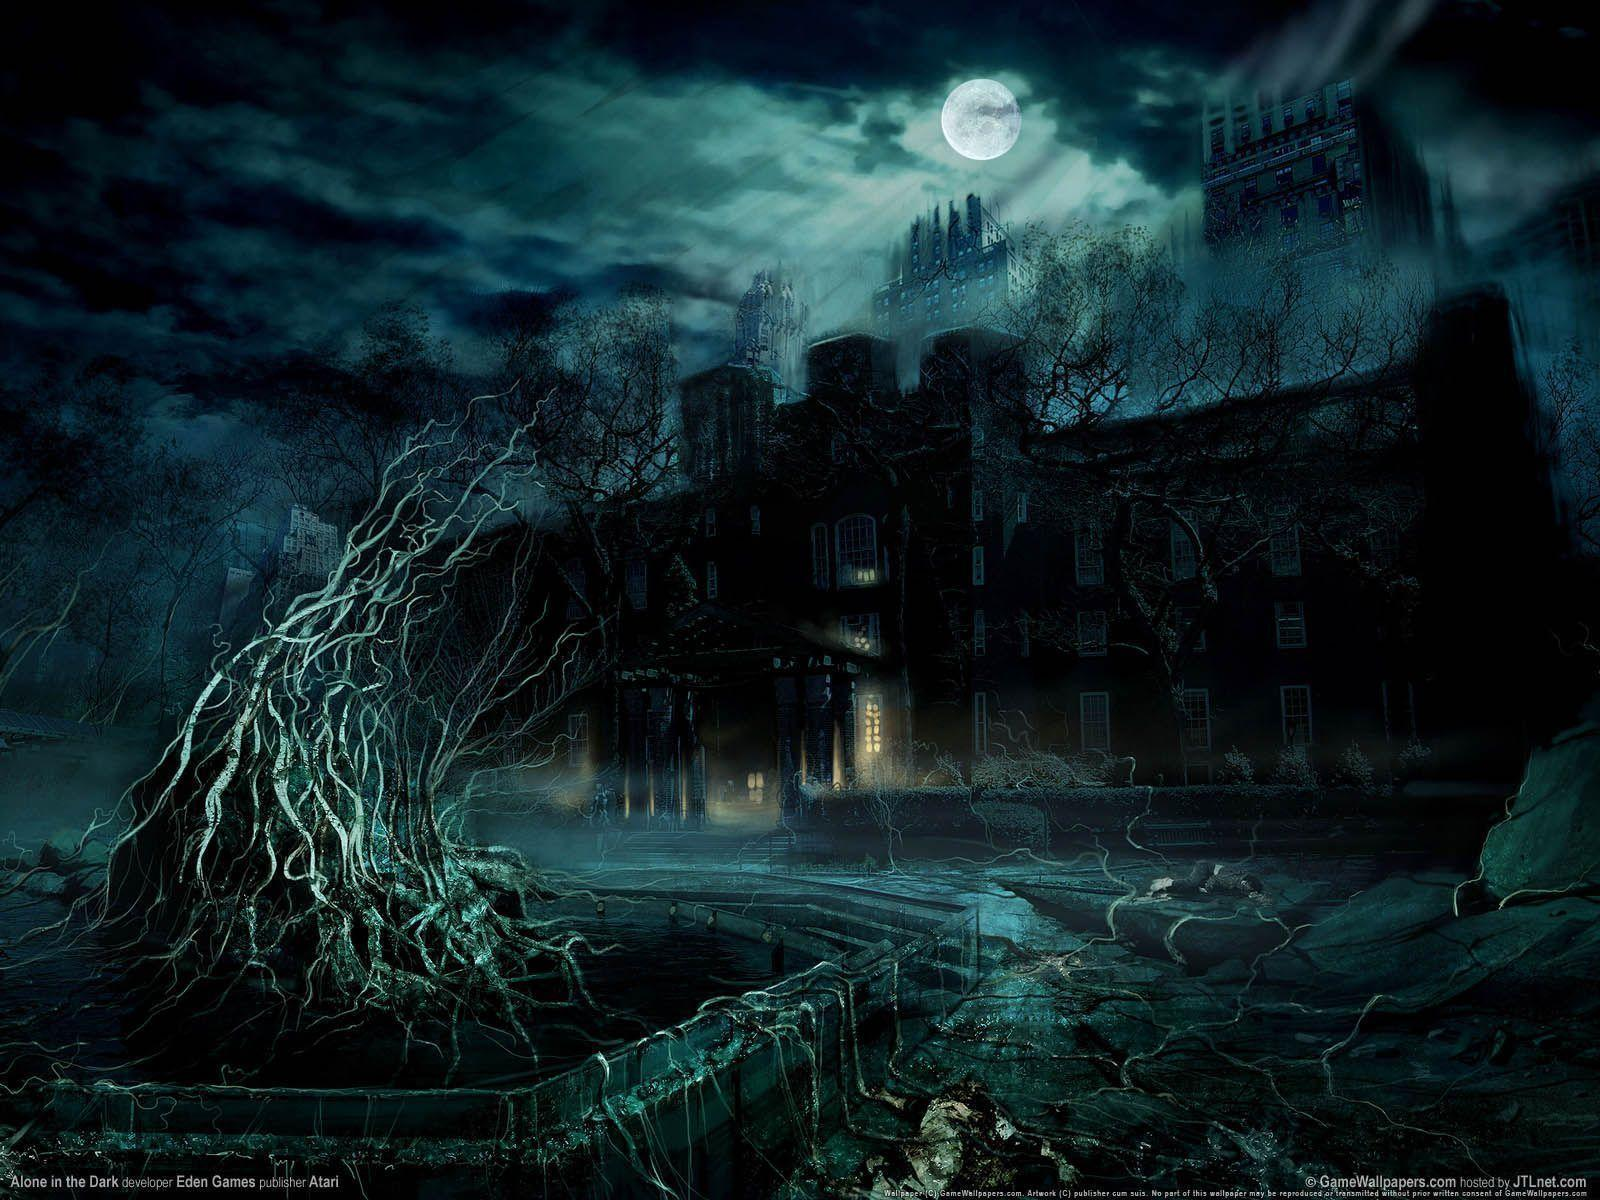 Dark Nature Desktop Wallpapers Hd Desktop 10 HD Wallpapers